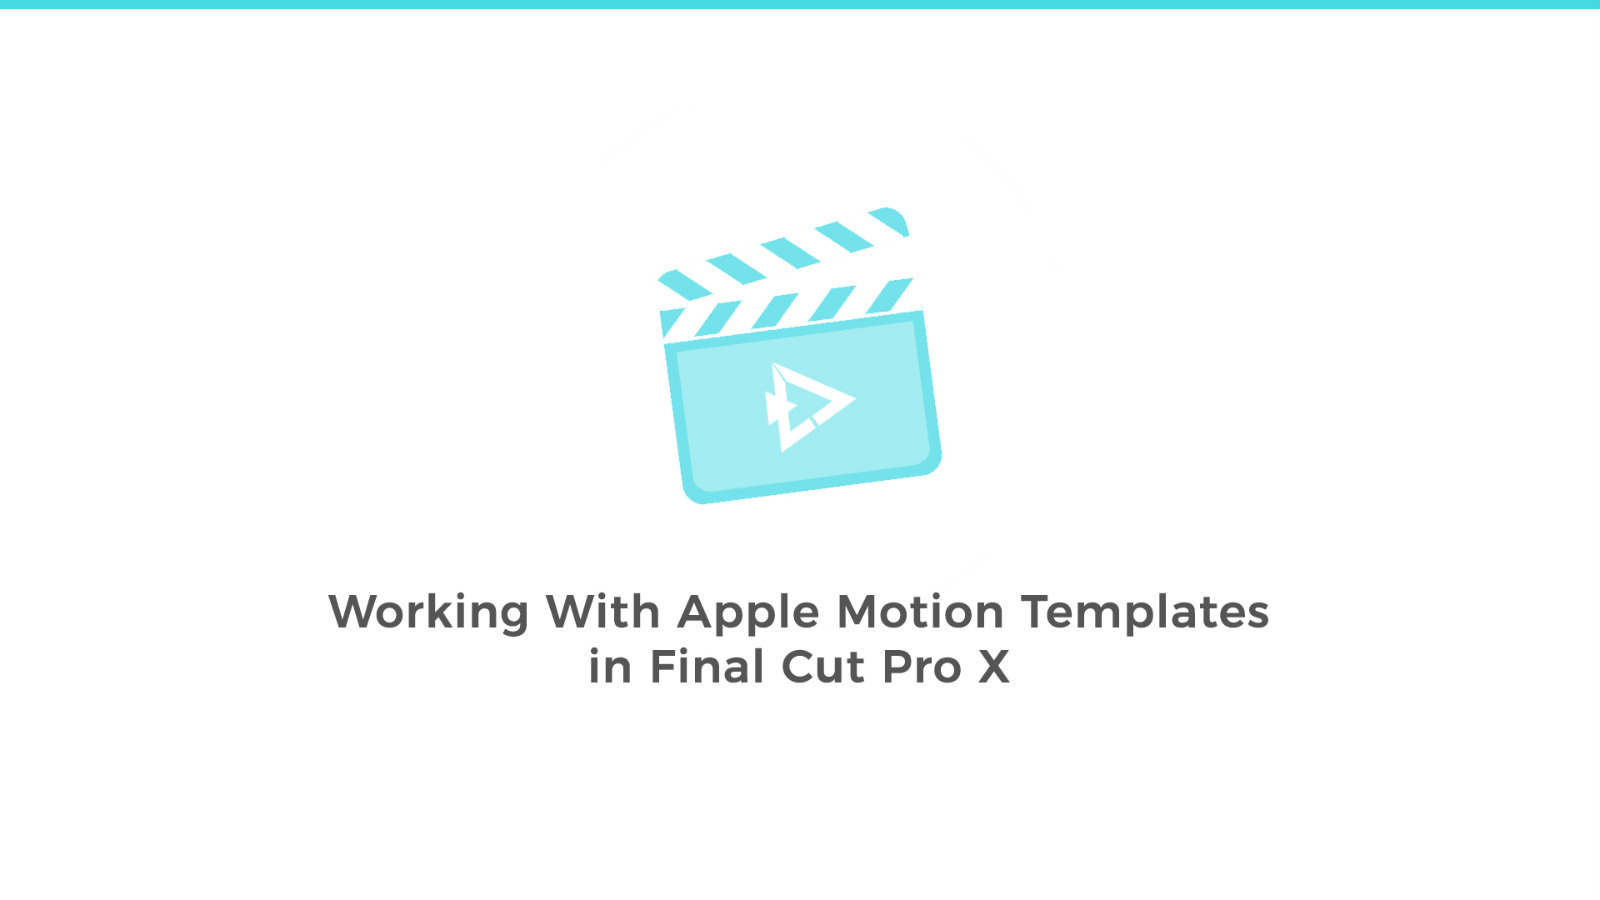 Working With Apple Motion Templates in FCPX